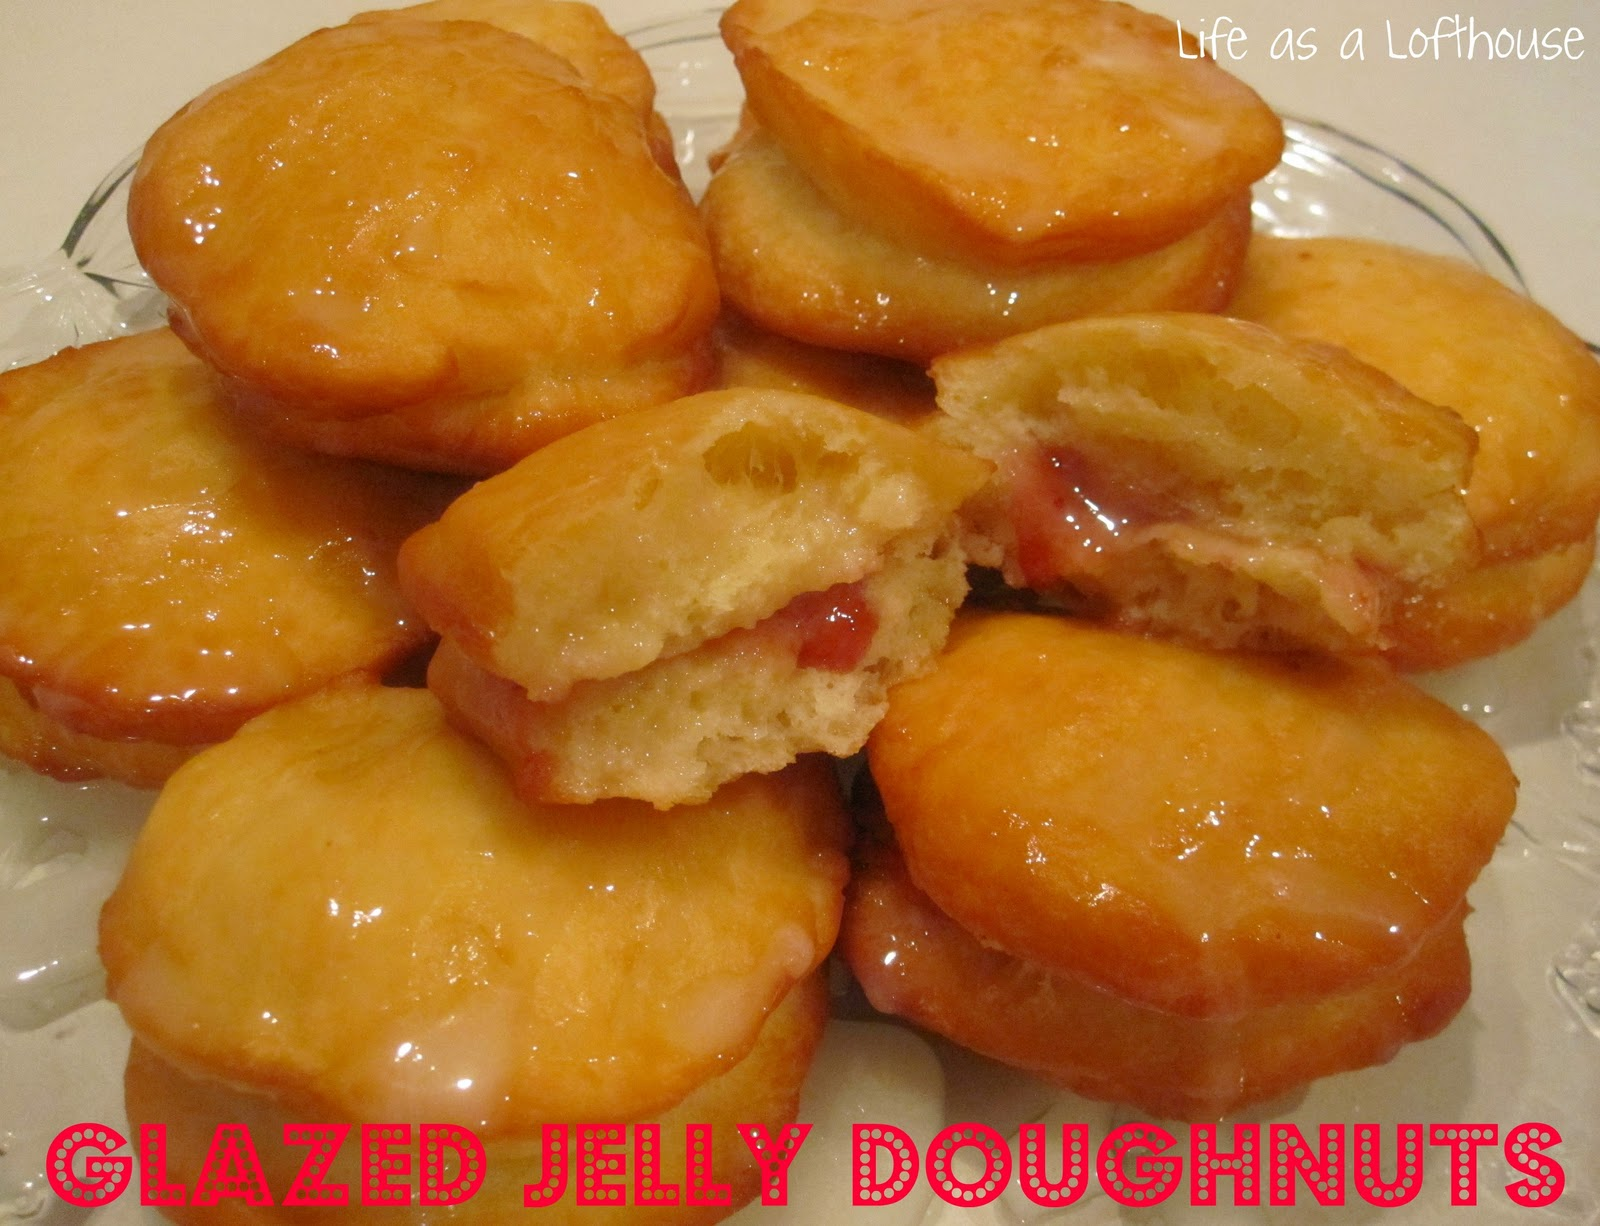 Glazed Jelly Doughnuts - Life In The Lofthouse